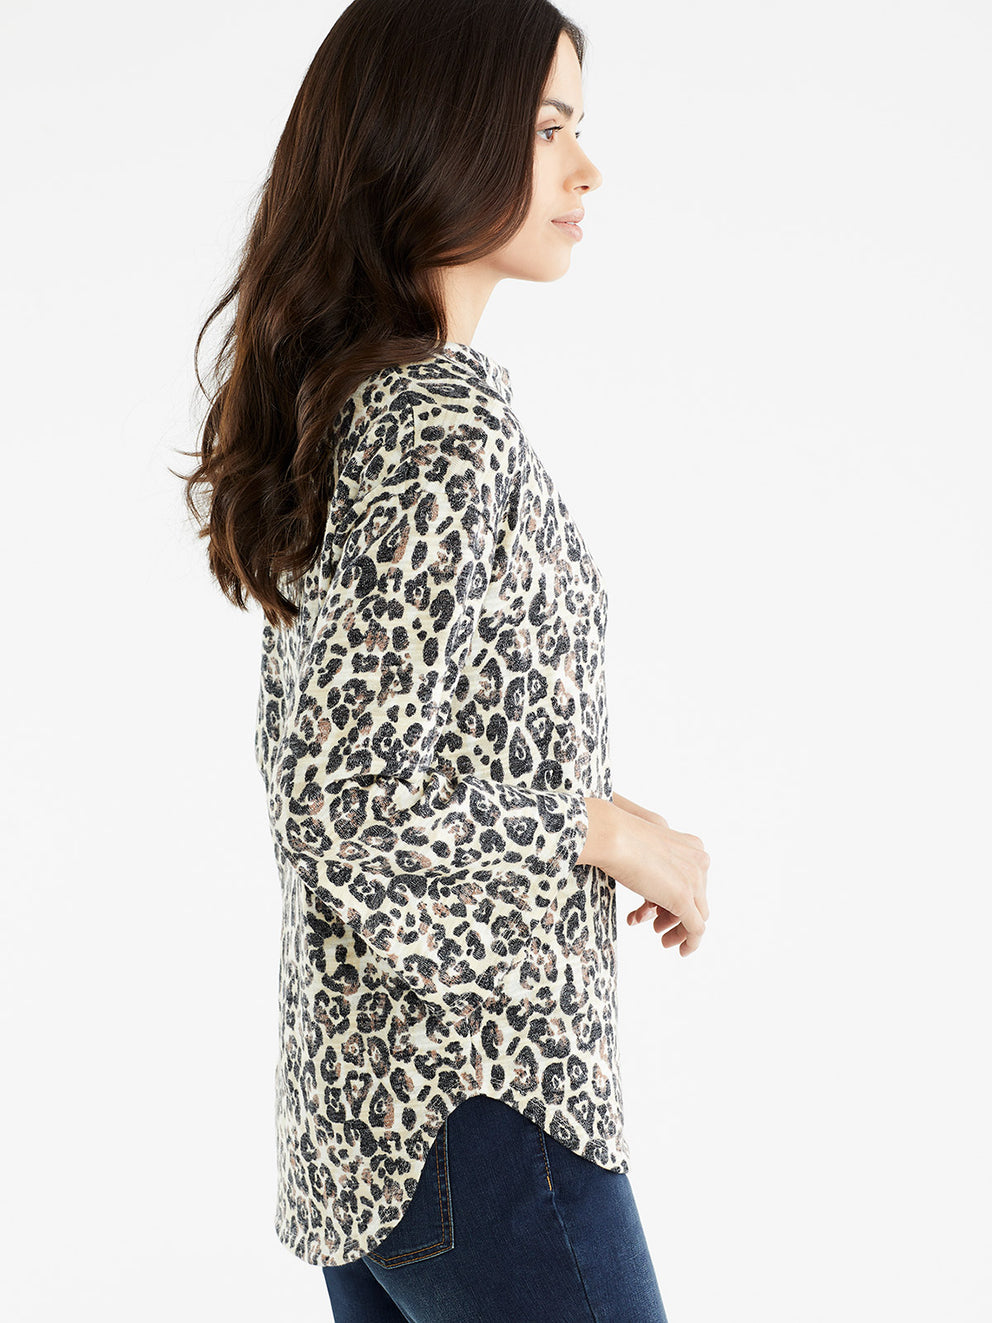 The Jones New York 3/4-Sleeve Drape Neck Top in color Stormy Leopard Print - Image Position 2